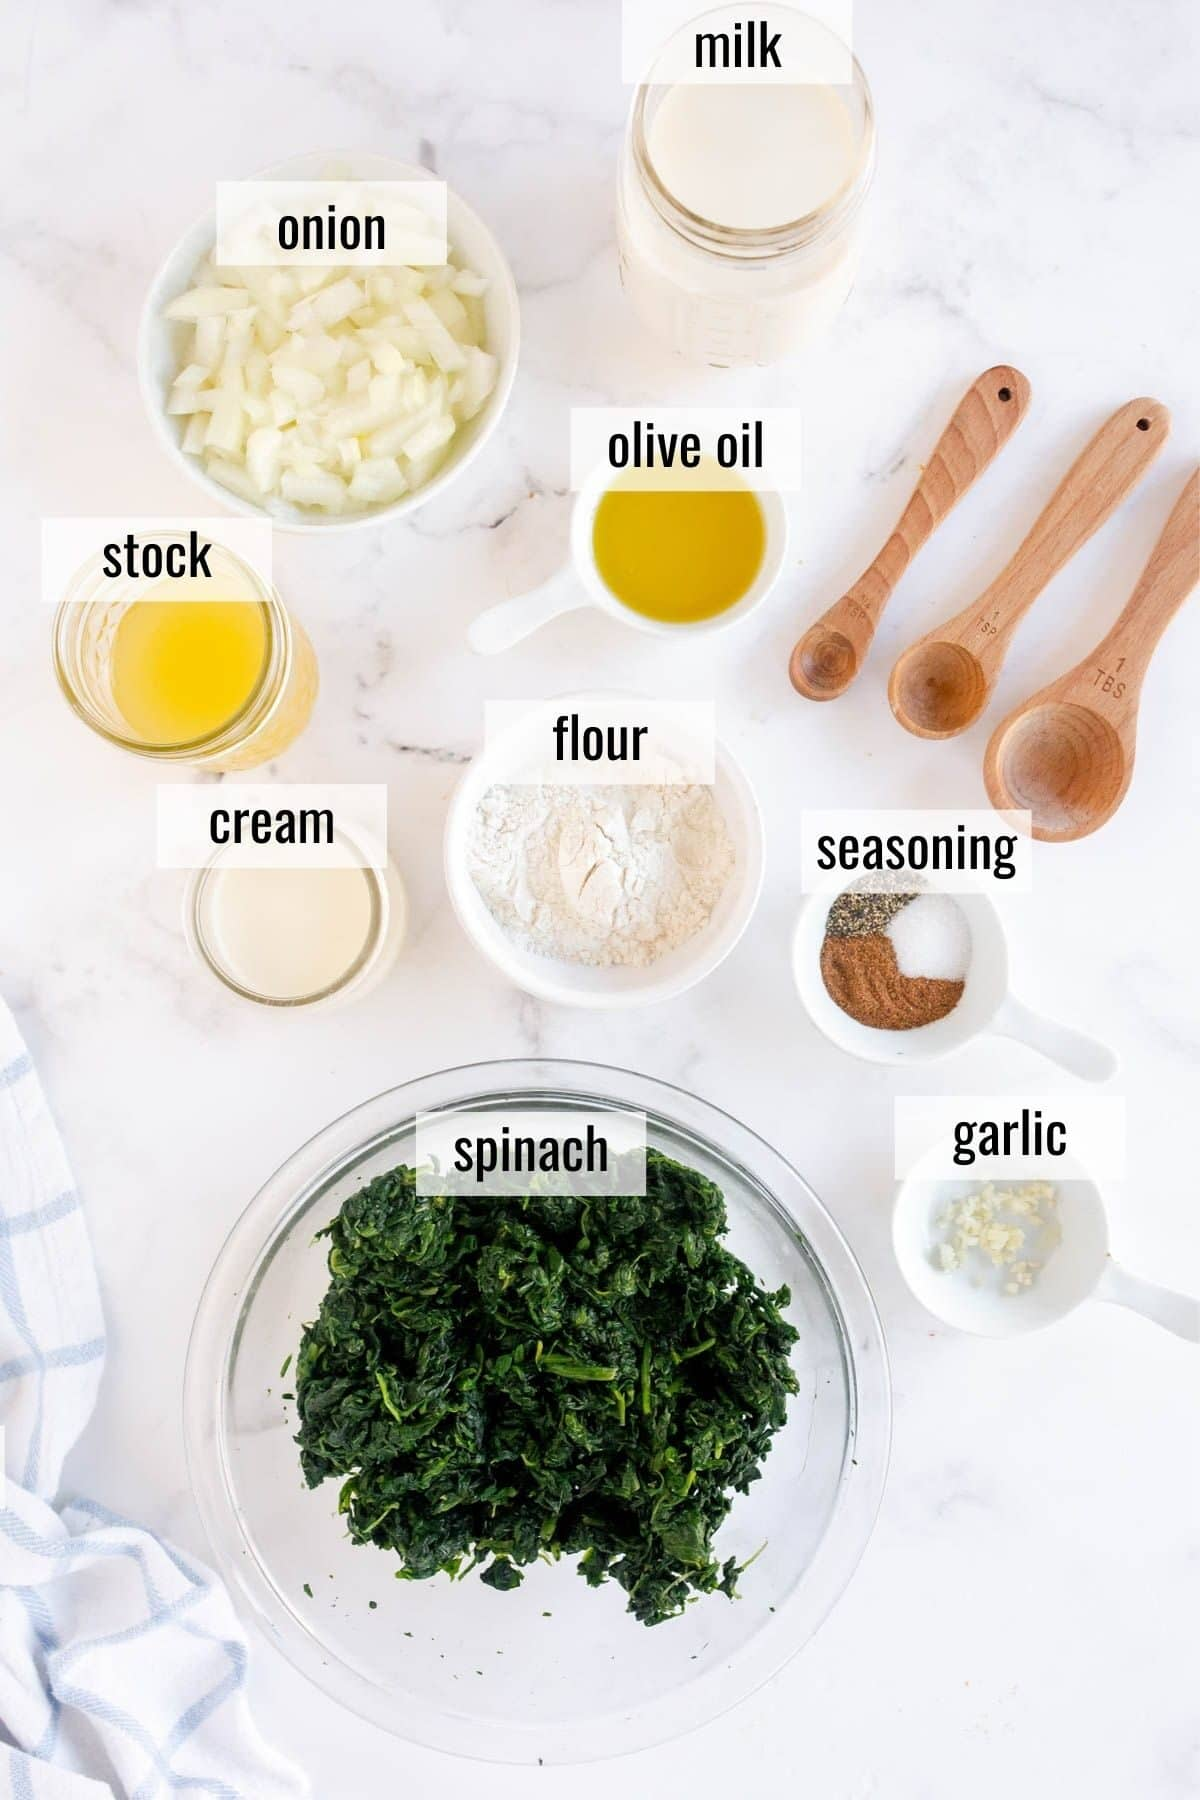 ingredients laid out and labeled